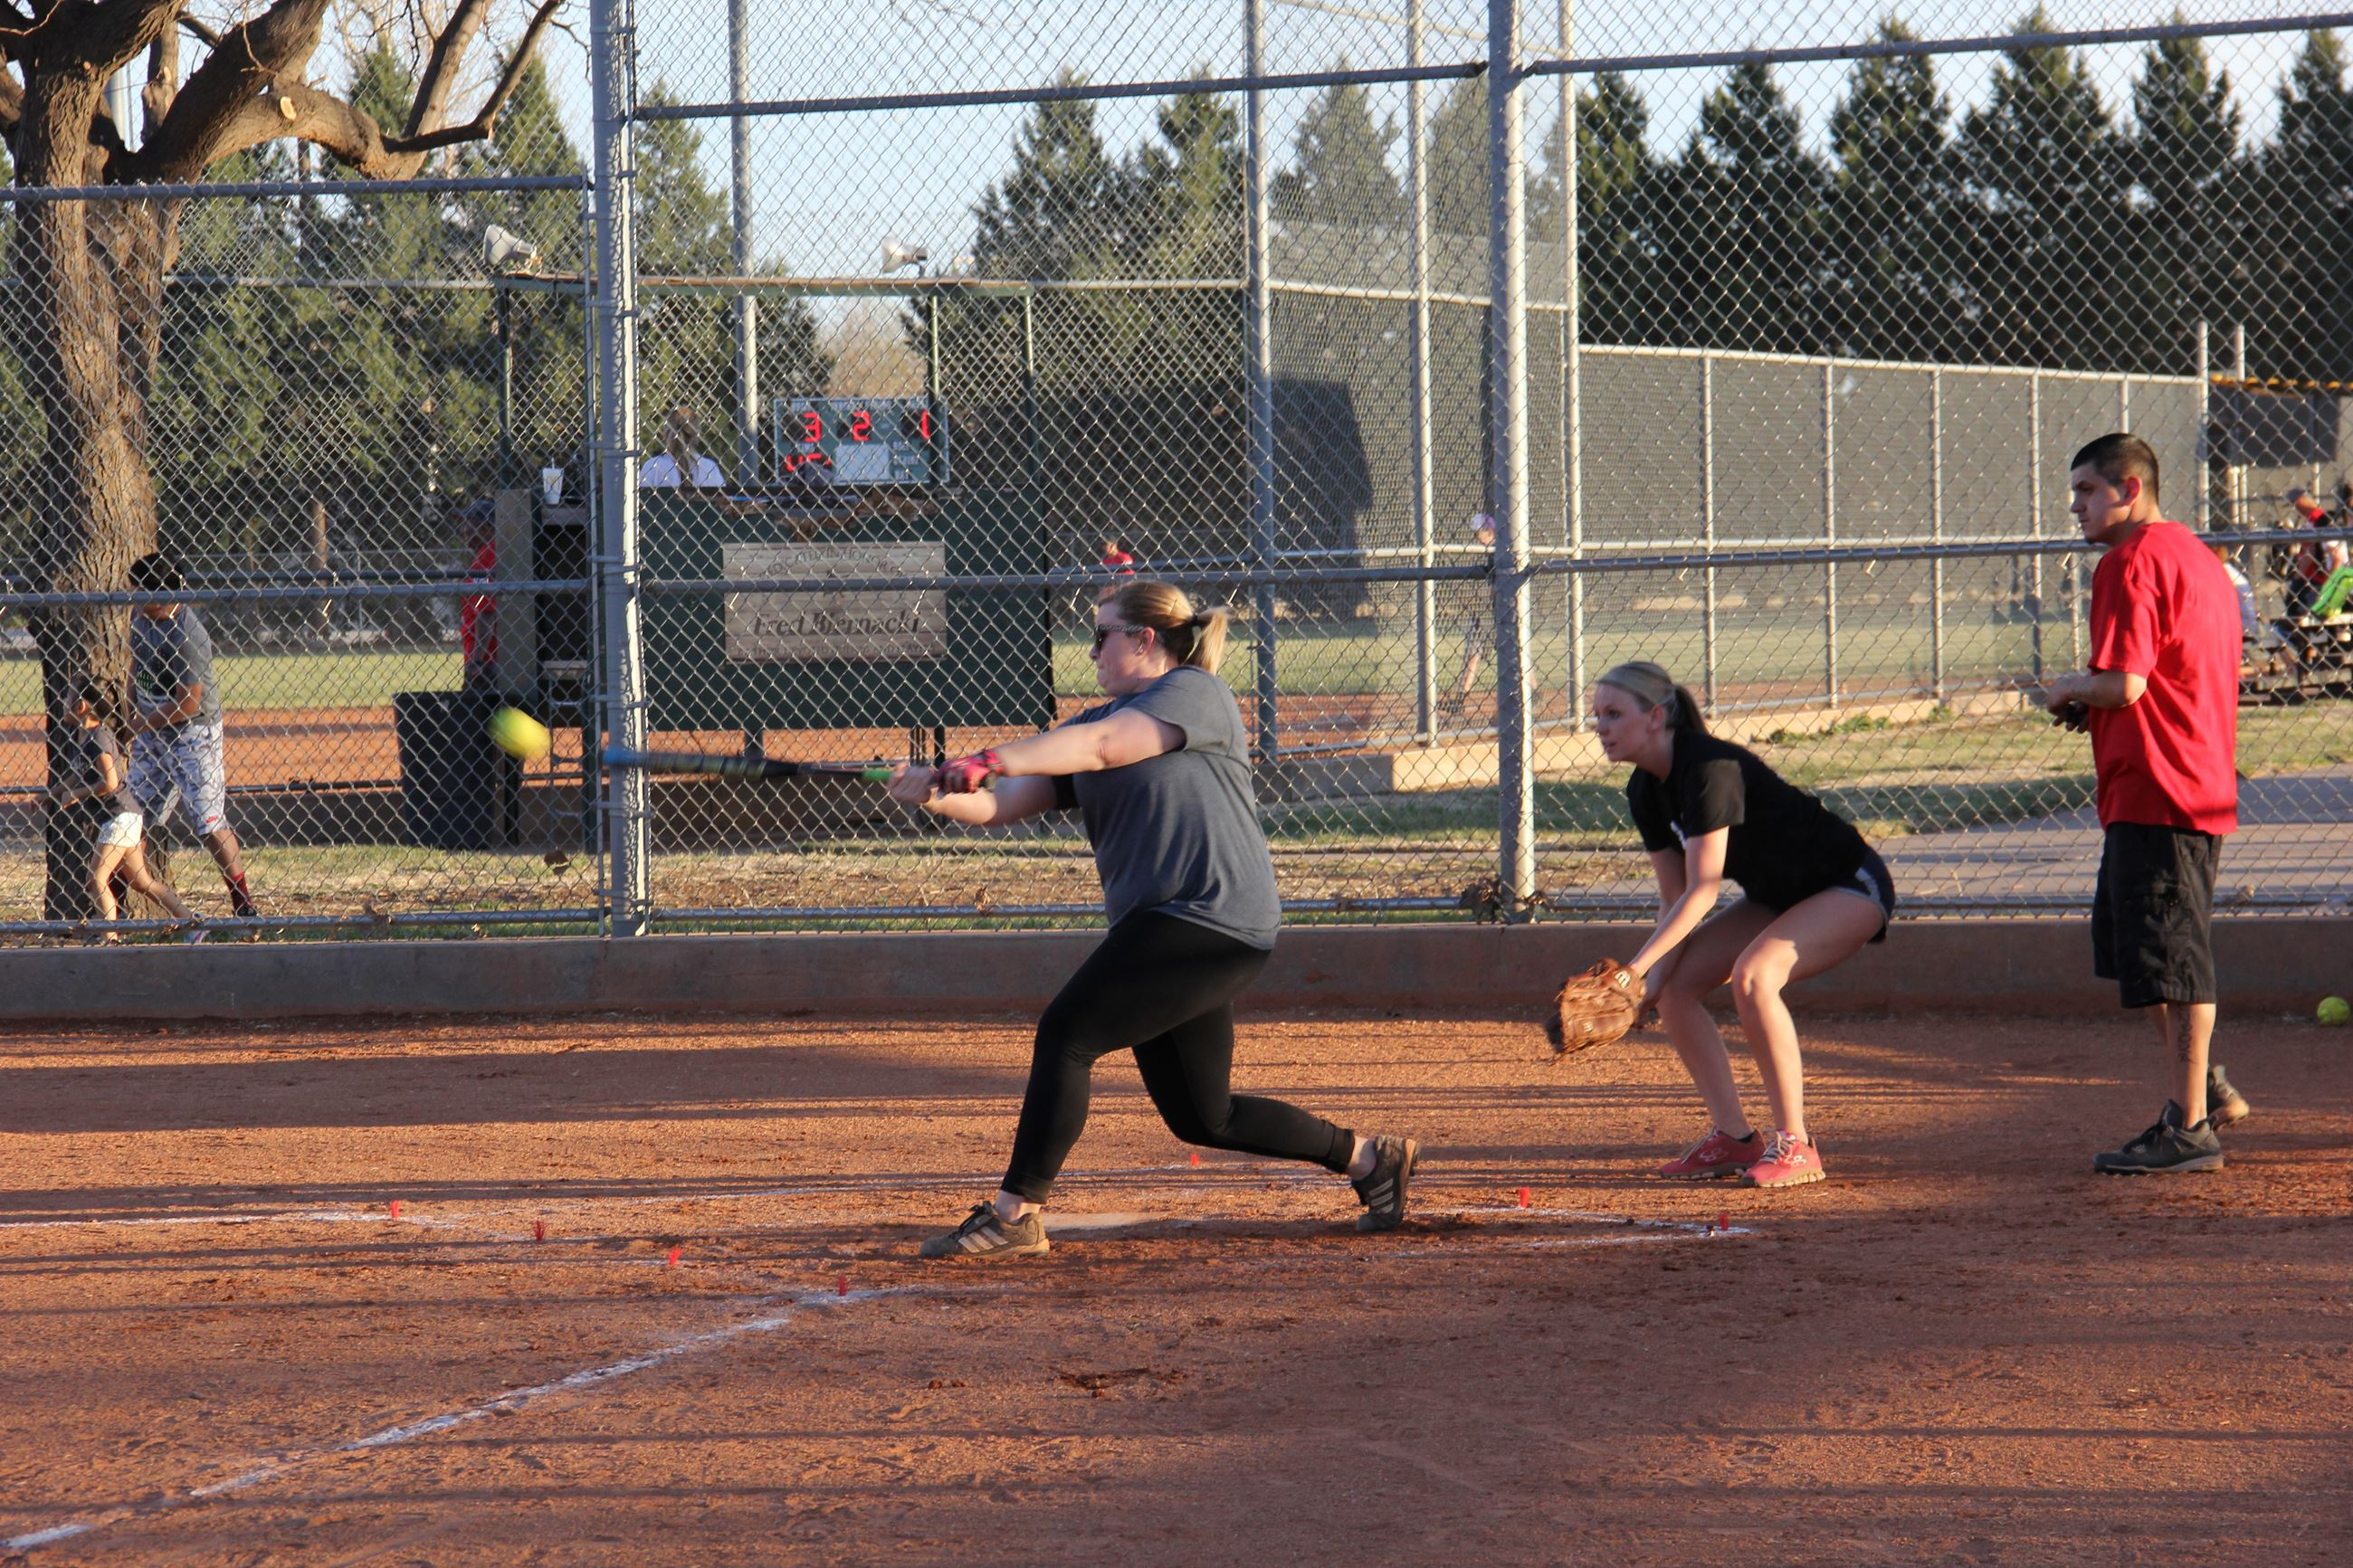 Woman up to bat in softball